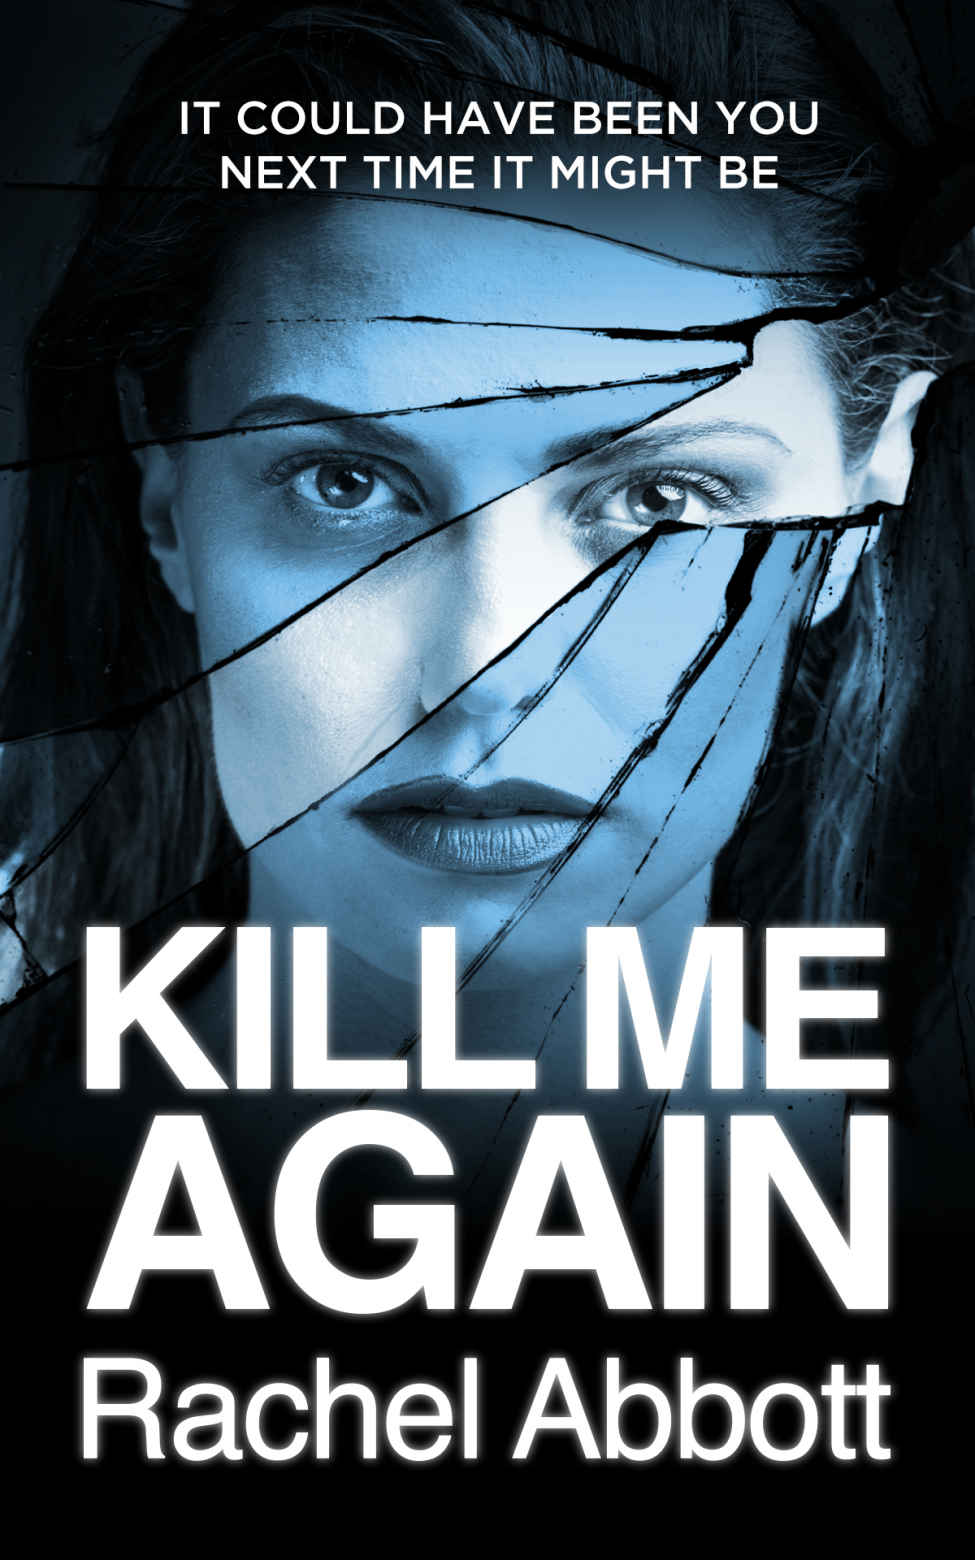 kill me again - book cover